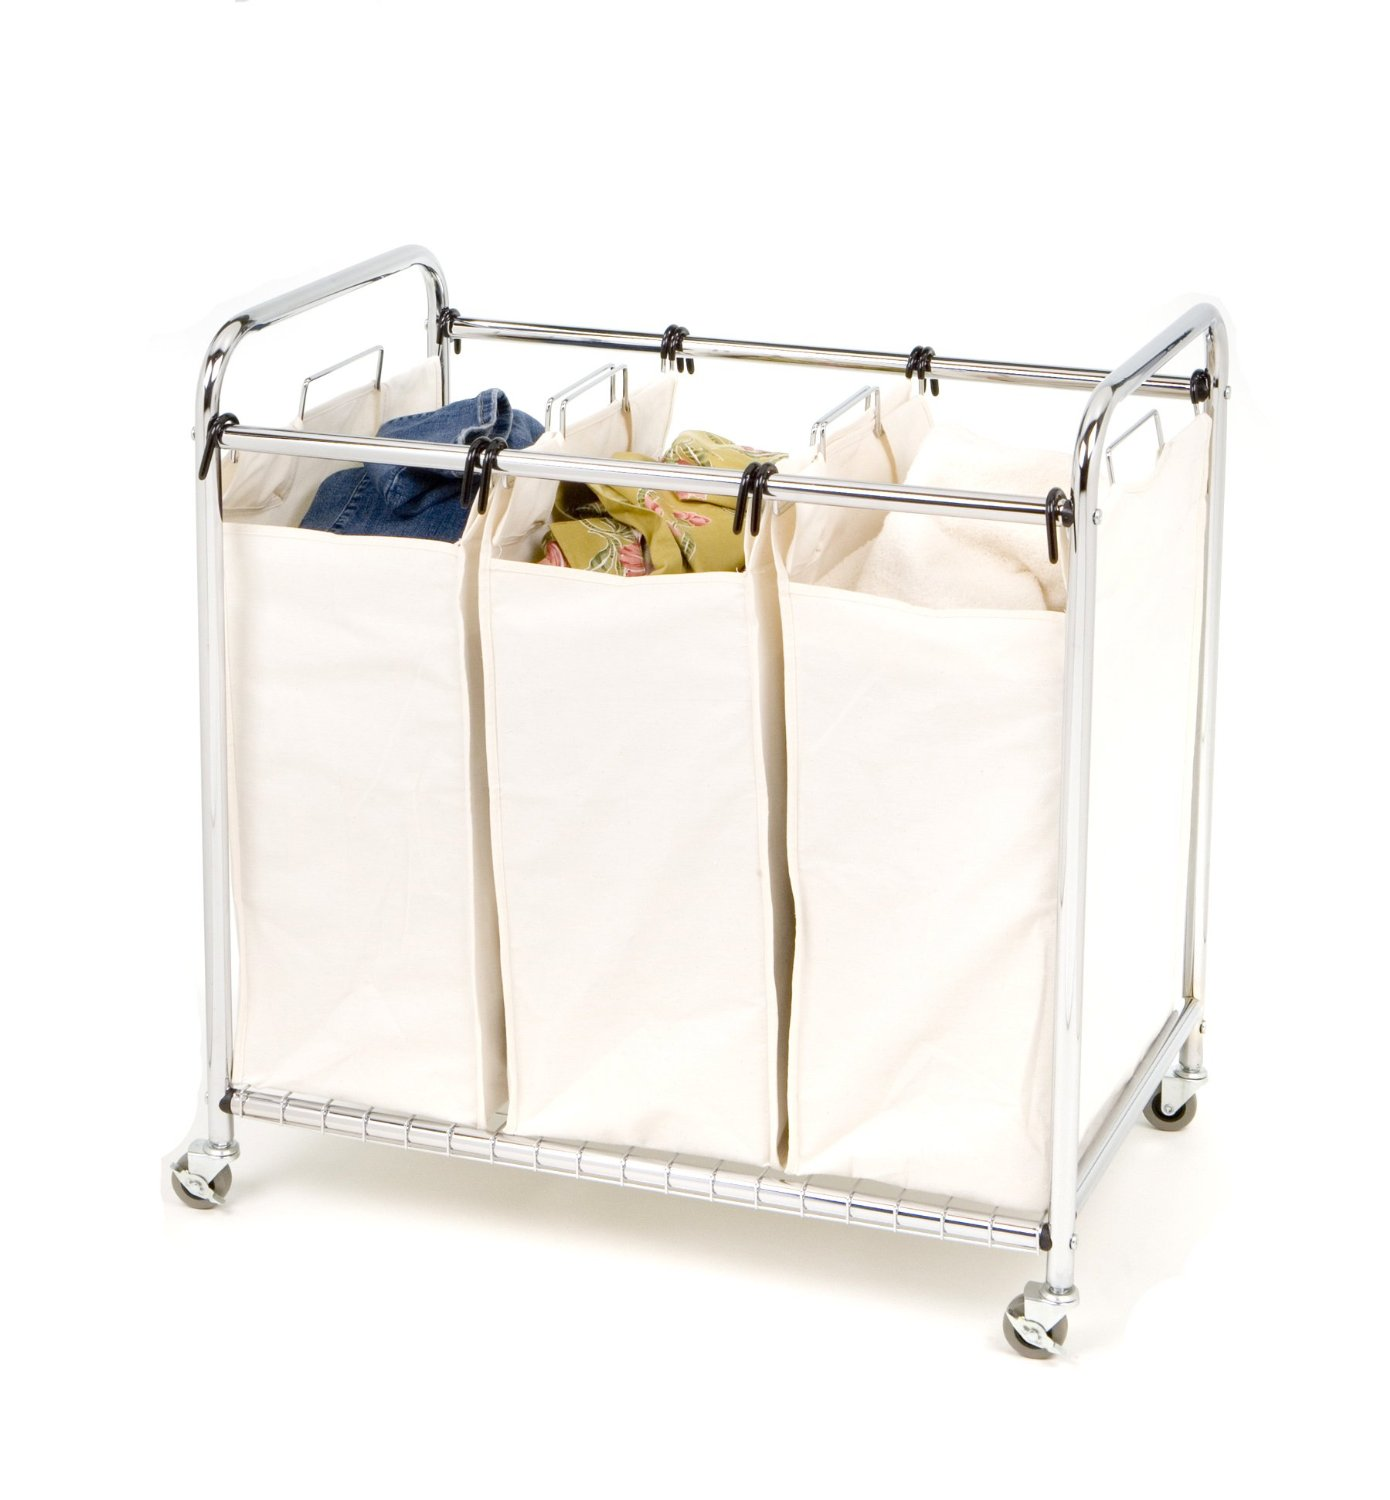 Triple Bin Laundry Basket on Wheels Ideas